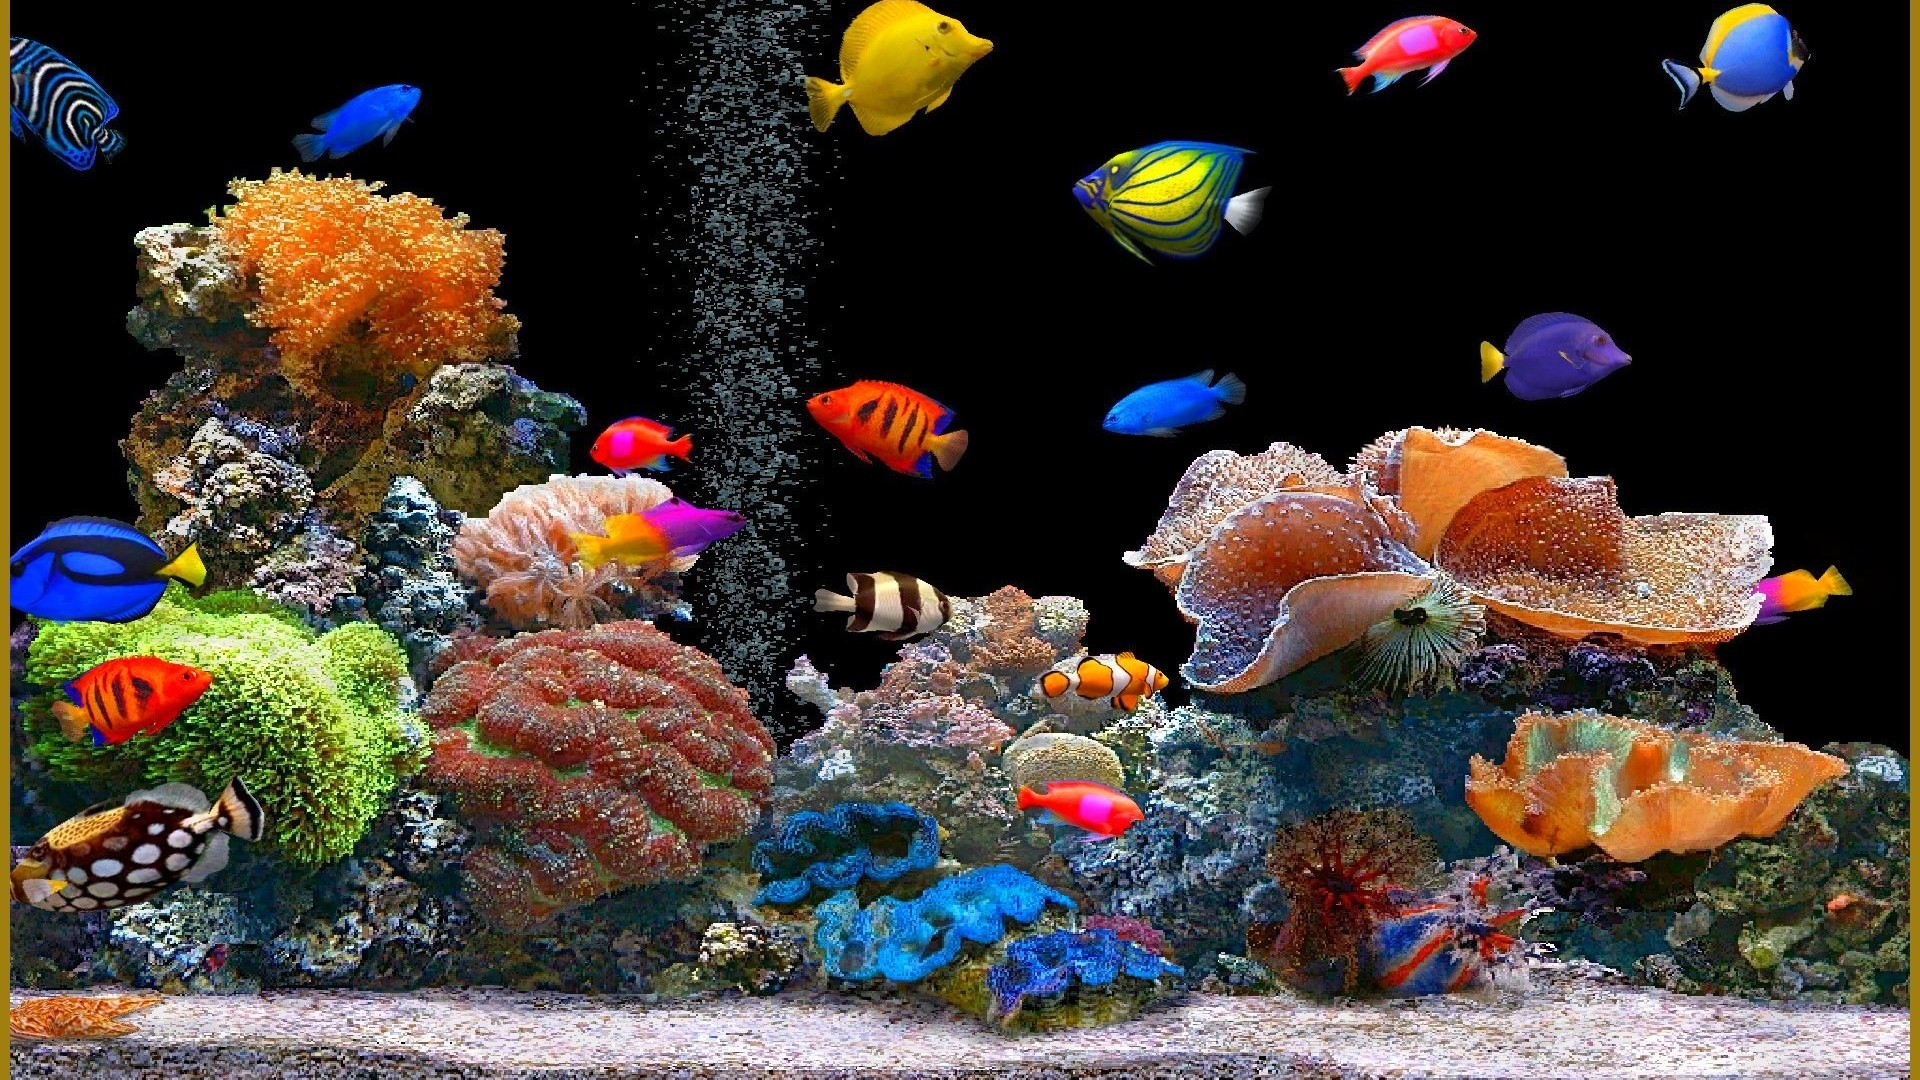 1920x1080 Animated Desktop Wallpaper Fish for Windows 8.1 | All for Windows 10 .